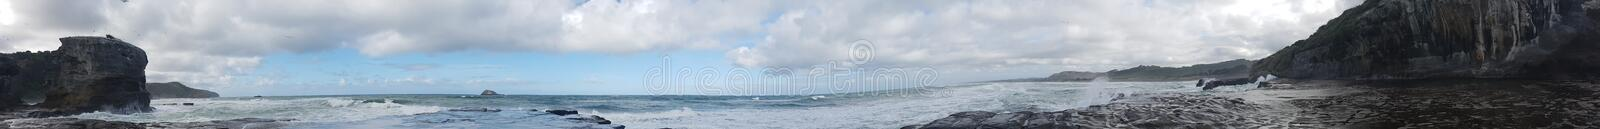 Wild wild west white wash waves panoramic royalty free stock photo